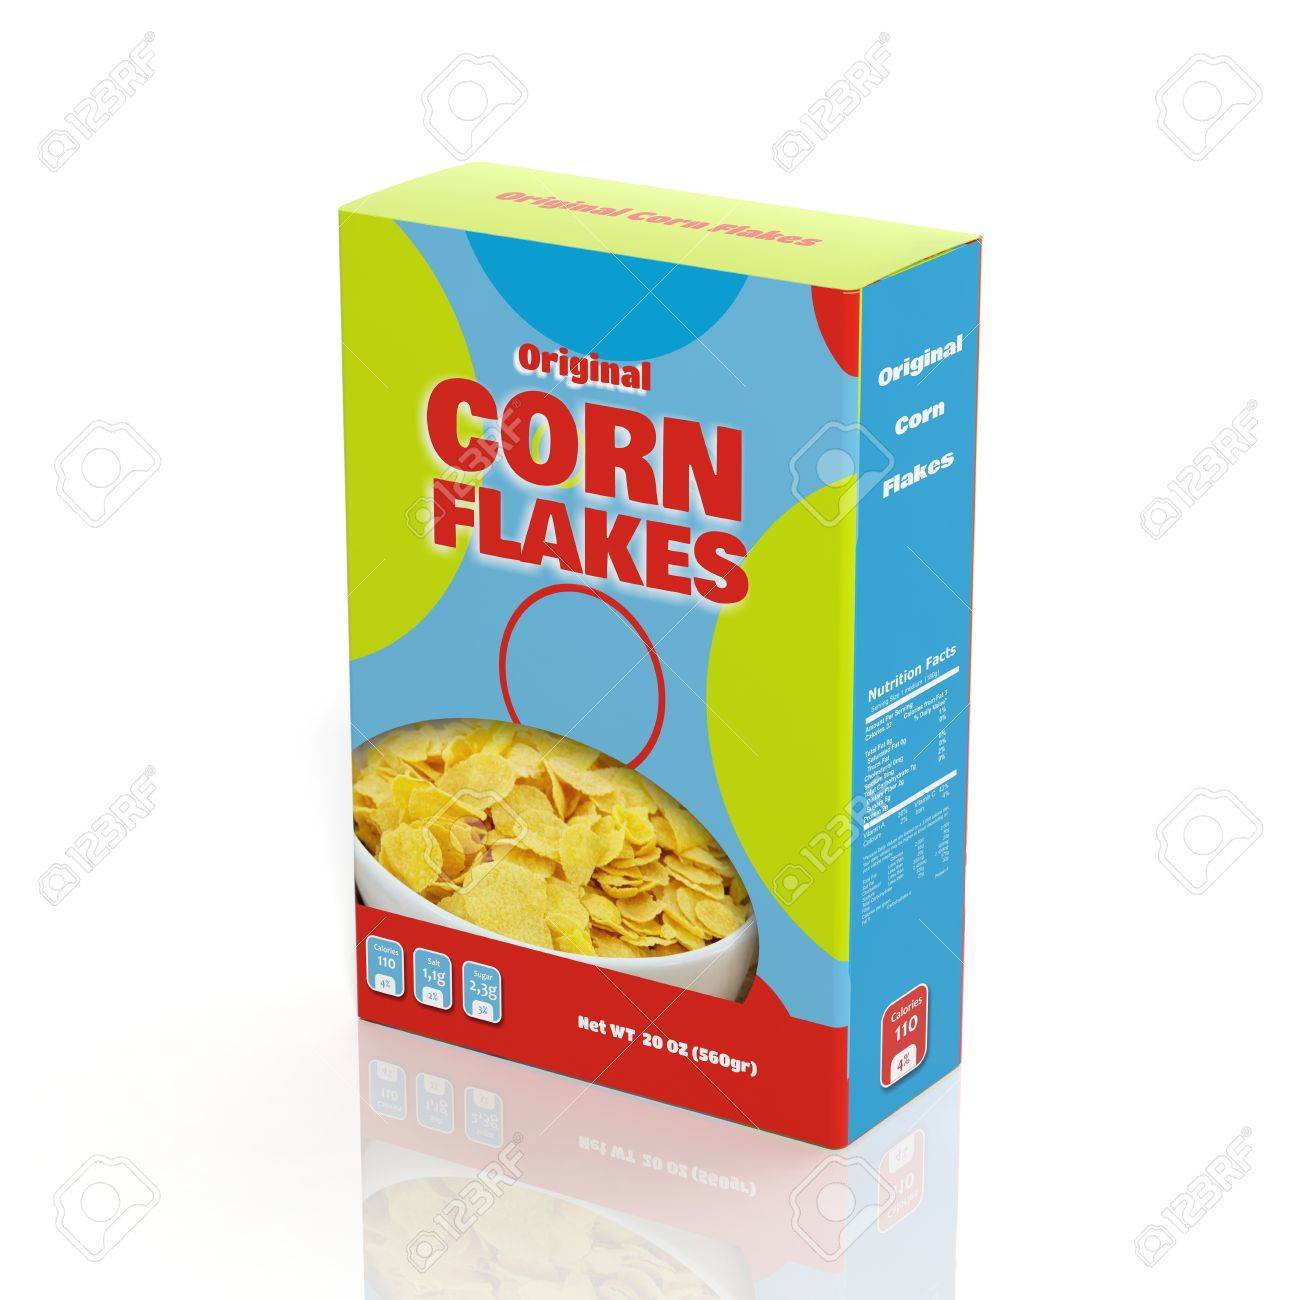 3D Corn Flakes paper package isolated on white Stock Photo - 33758439